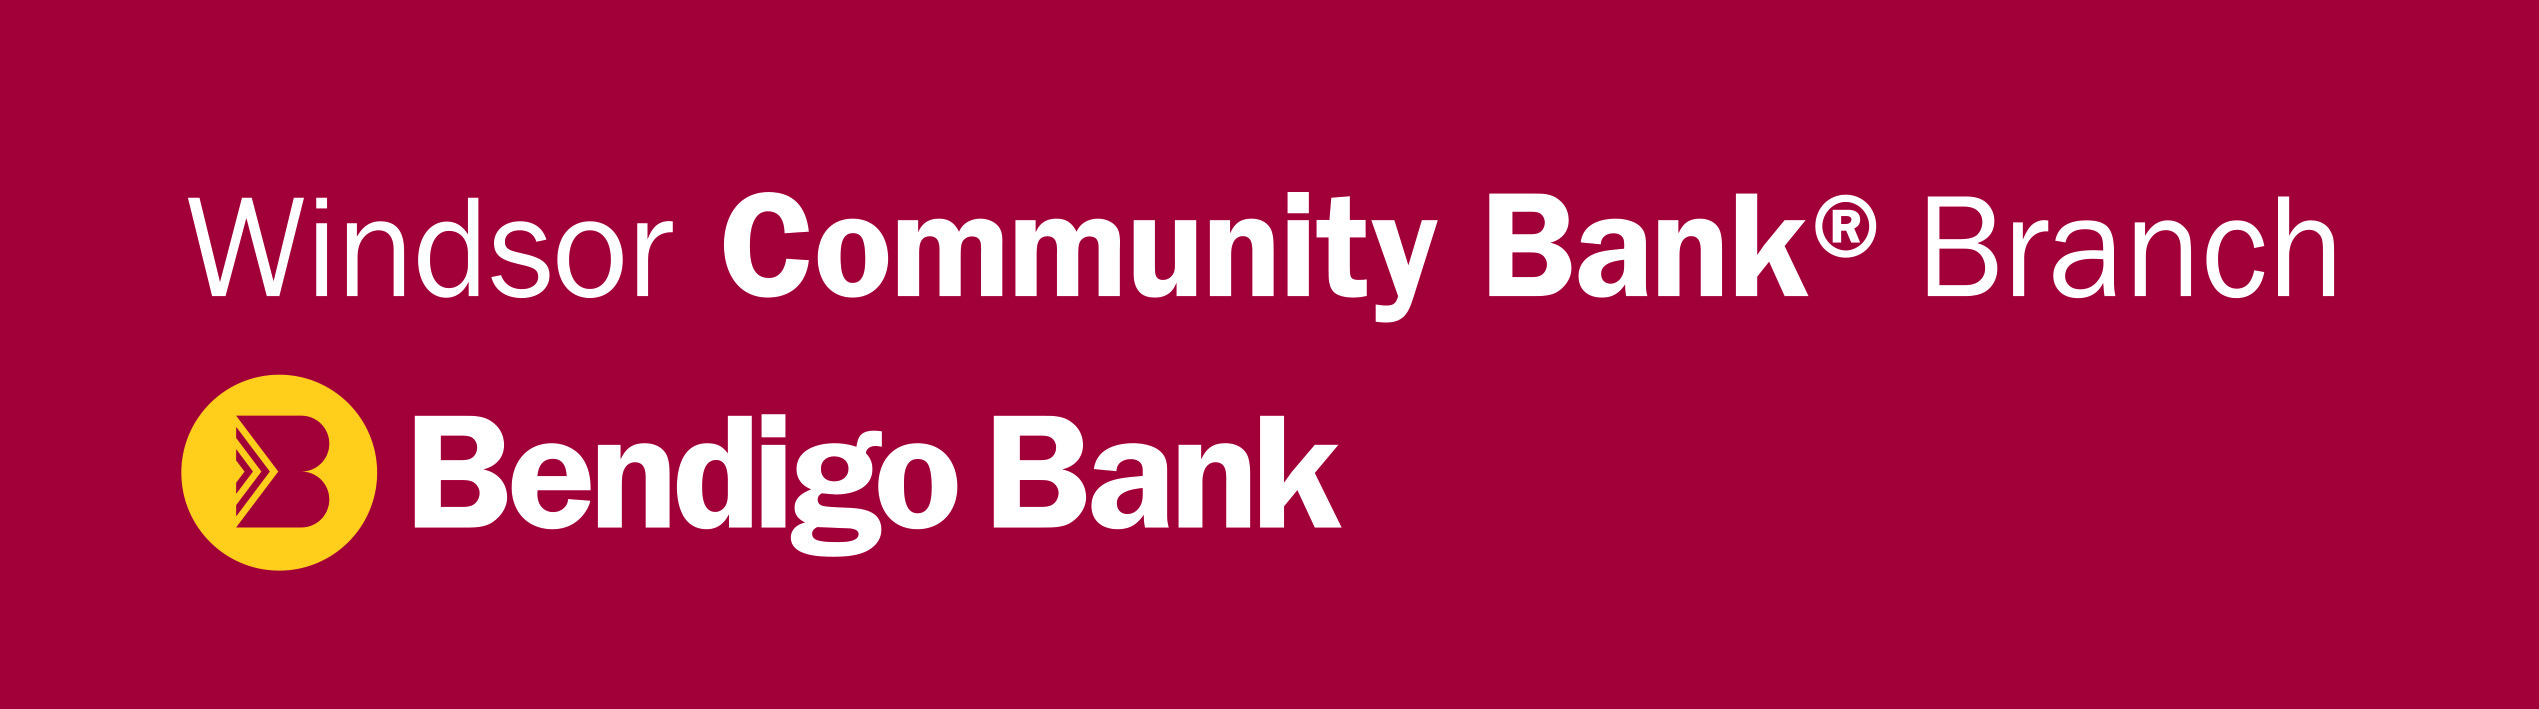 Windsor Community Bank